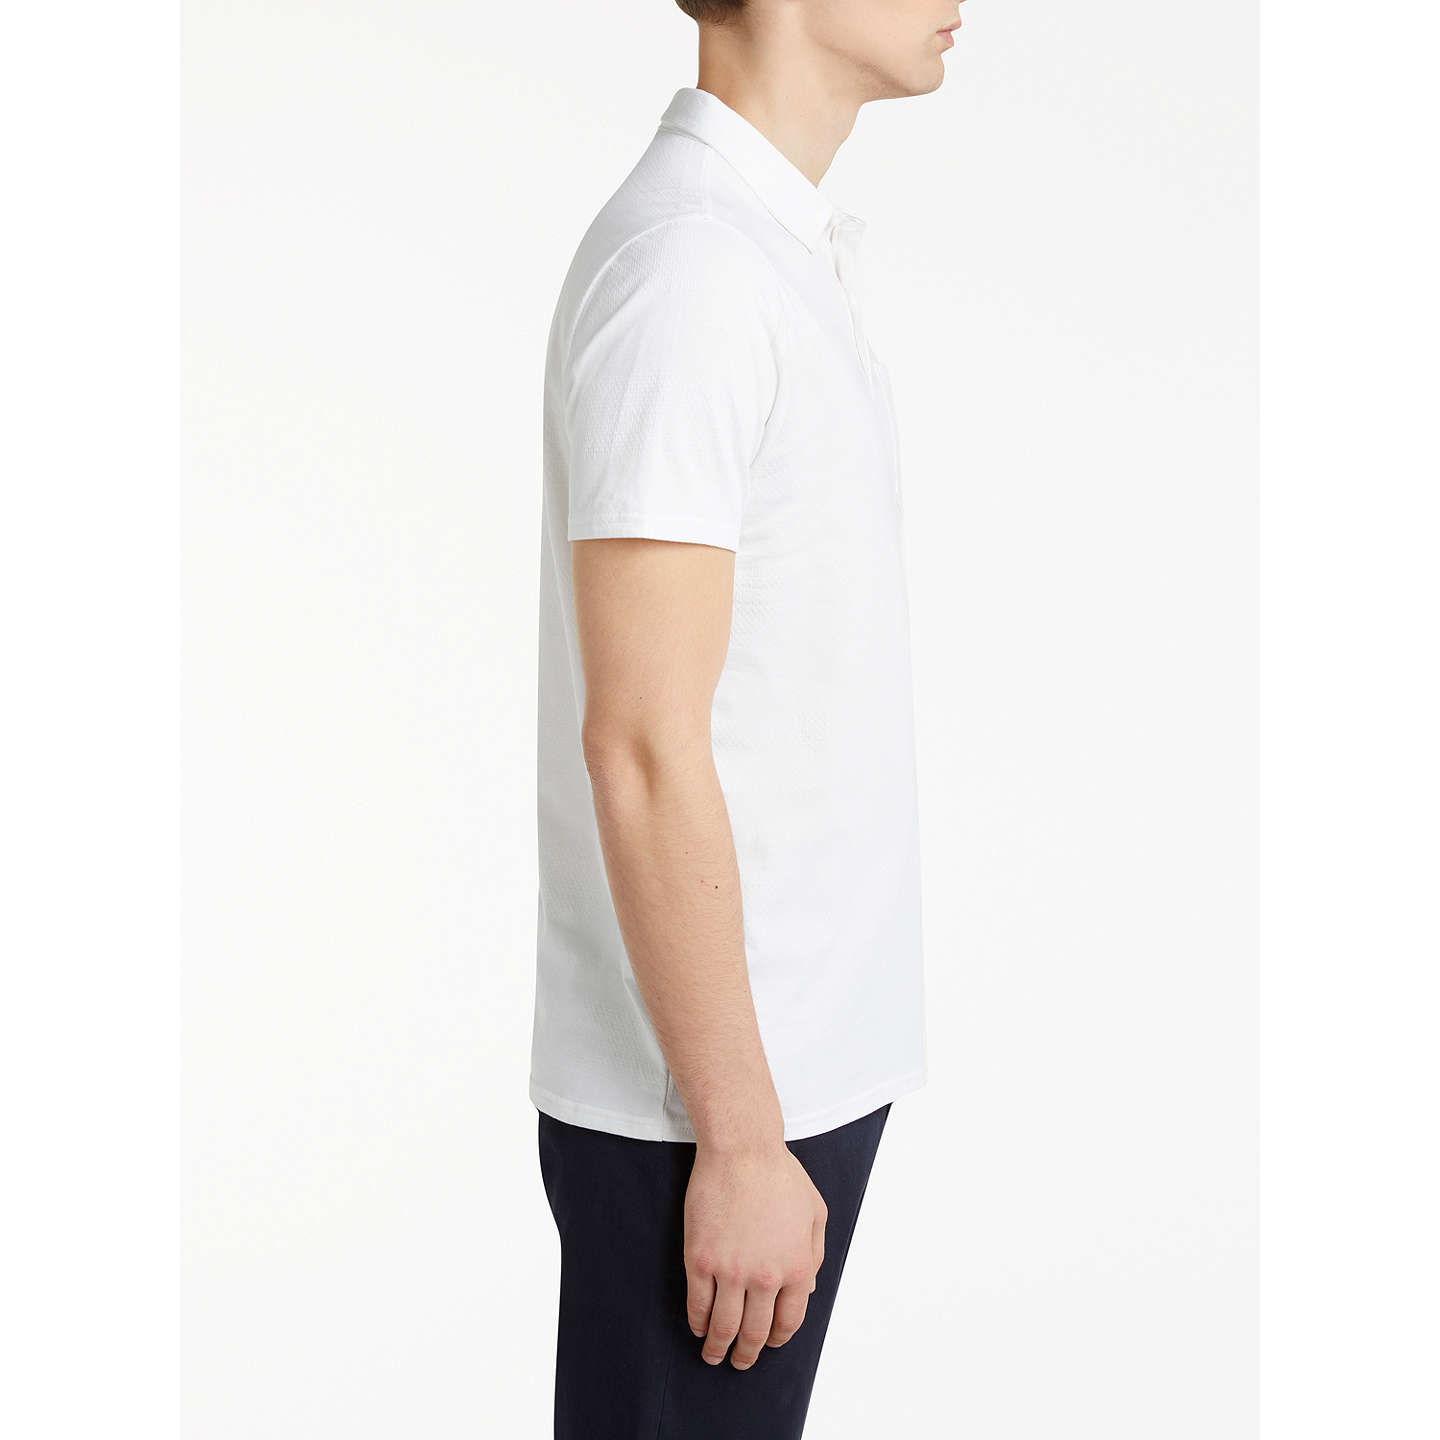 BuyKin by John Lewis Texture Stripe Polo Shirt, White, S Online at johnlewis.com